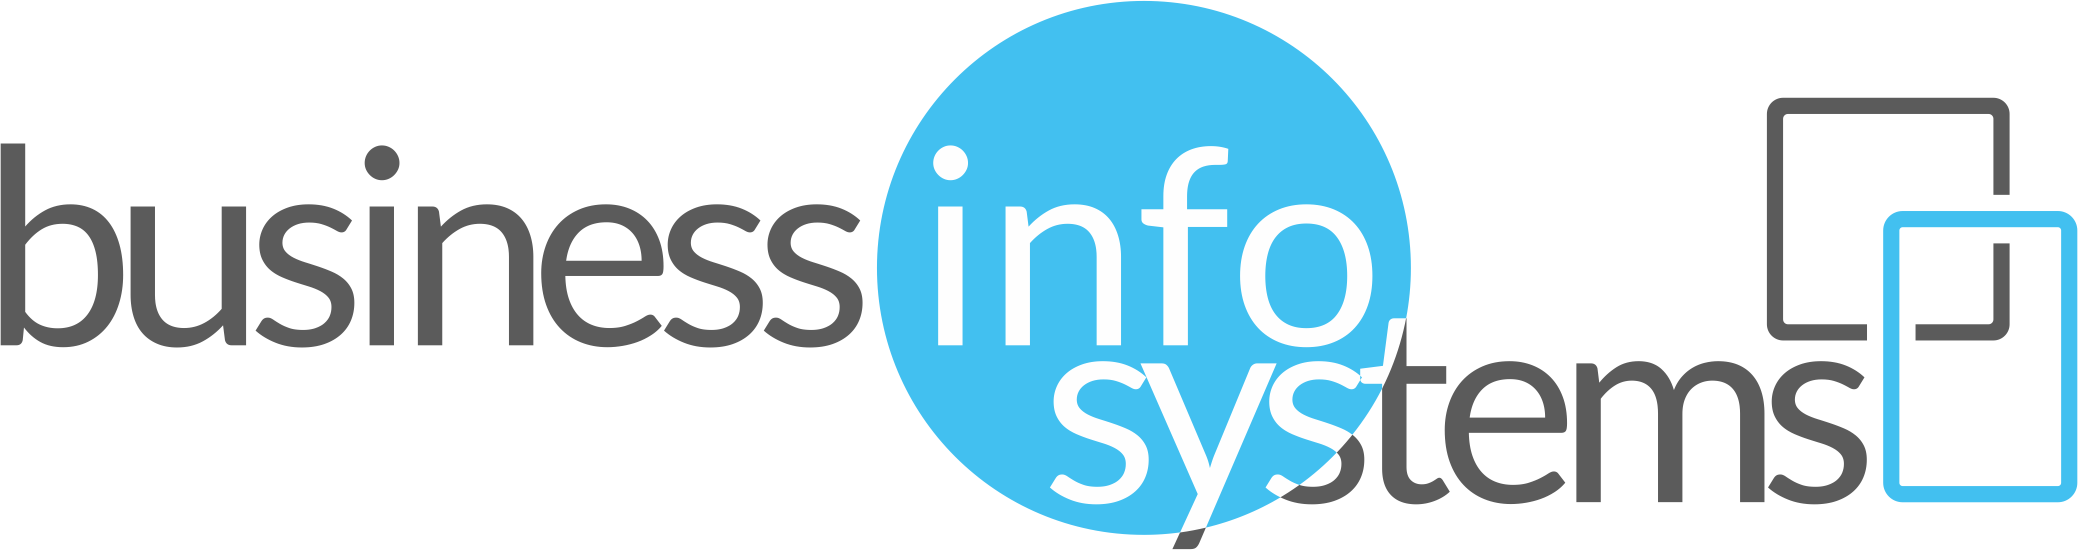 Business Info Systems